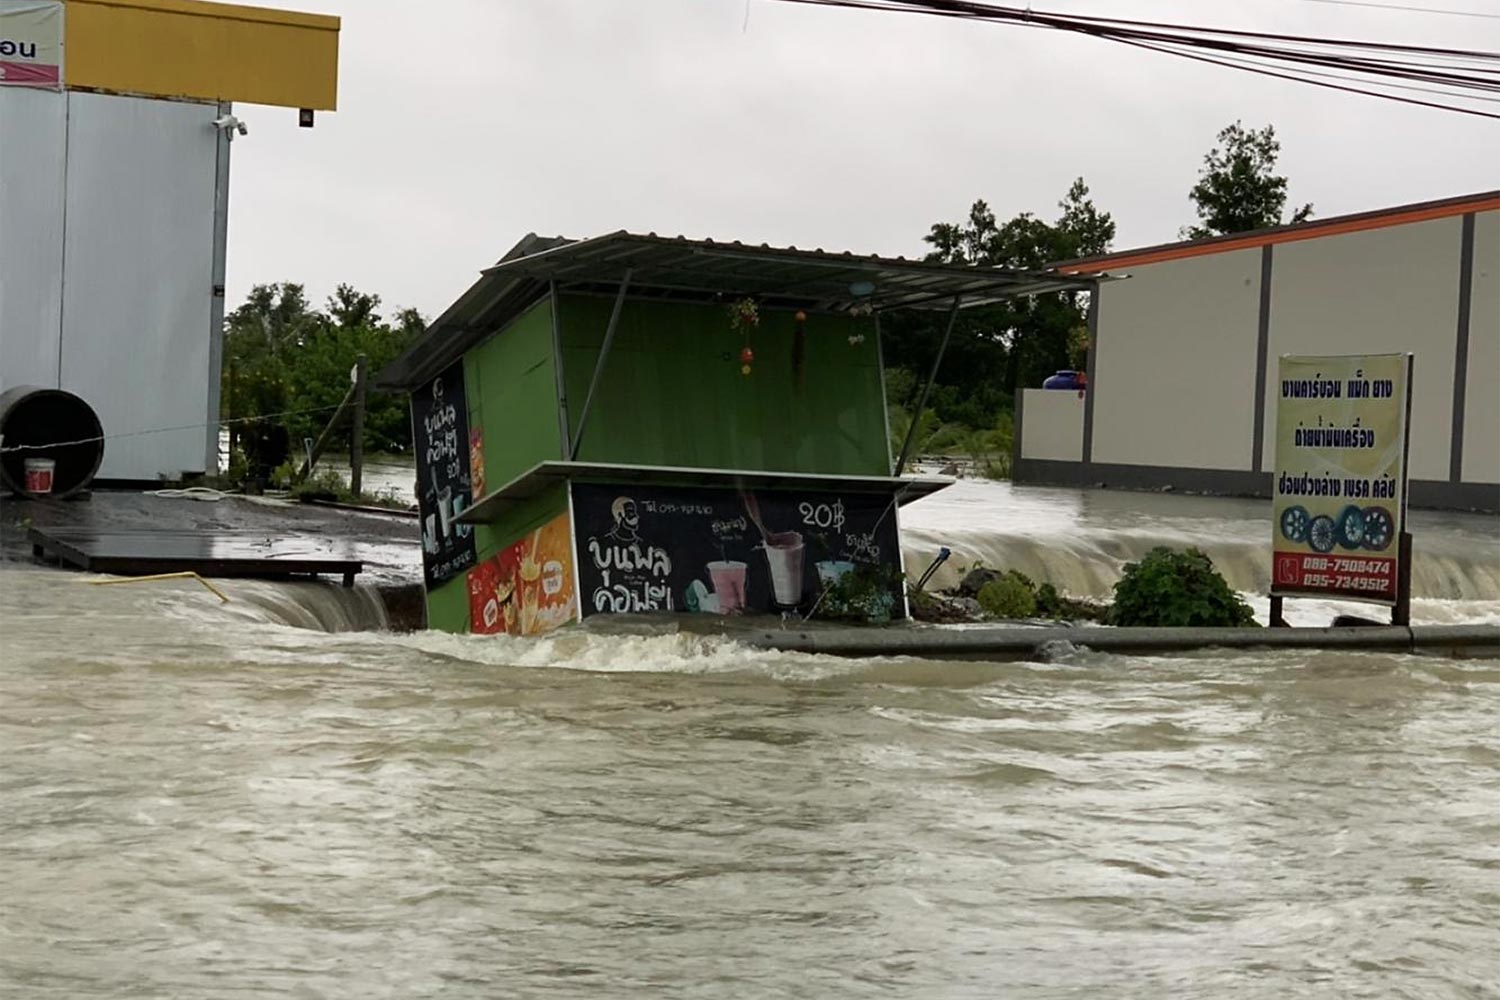 A coffee kiosk is inundated by floods in Nakhon Si Thammarat which was lashed by heavy downpours. (Photo by Nucharee Rakrun)